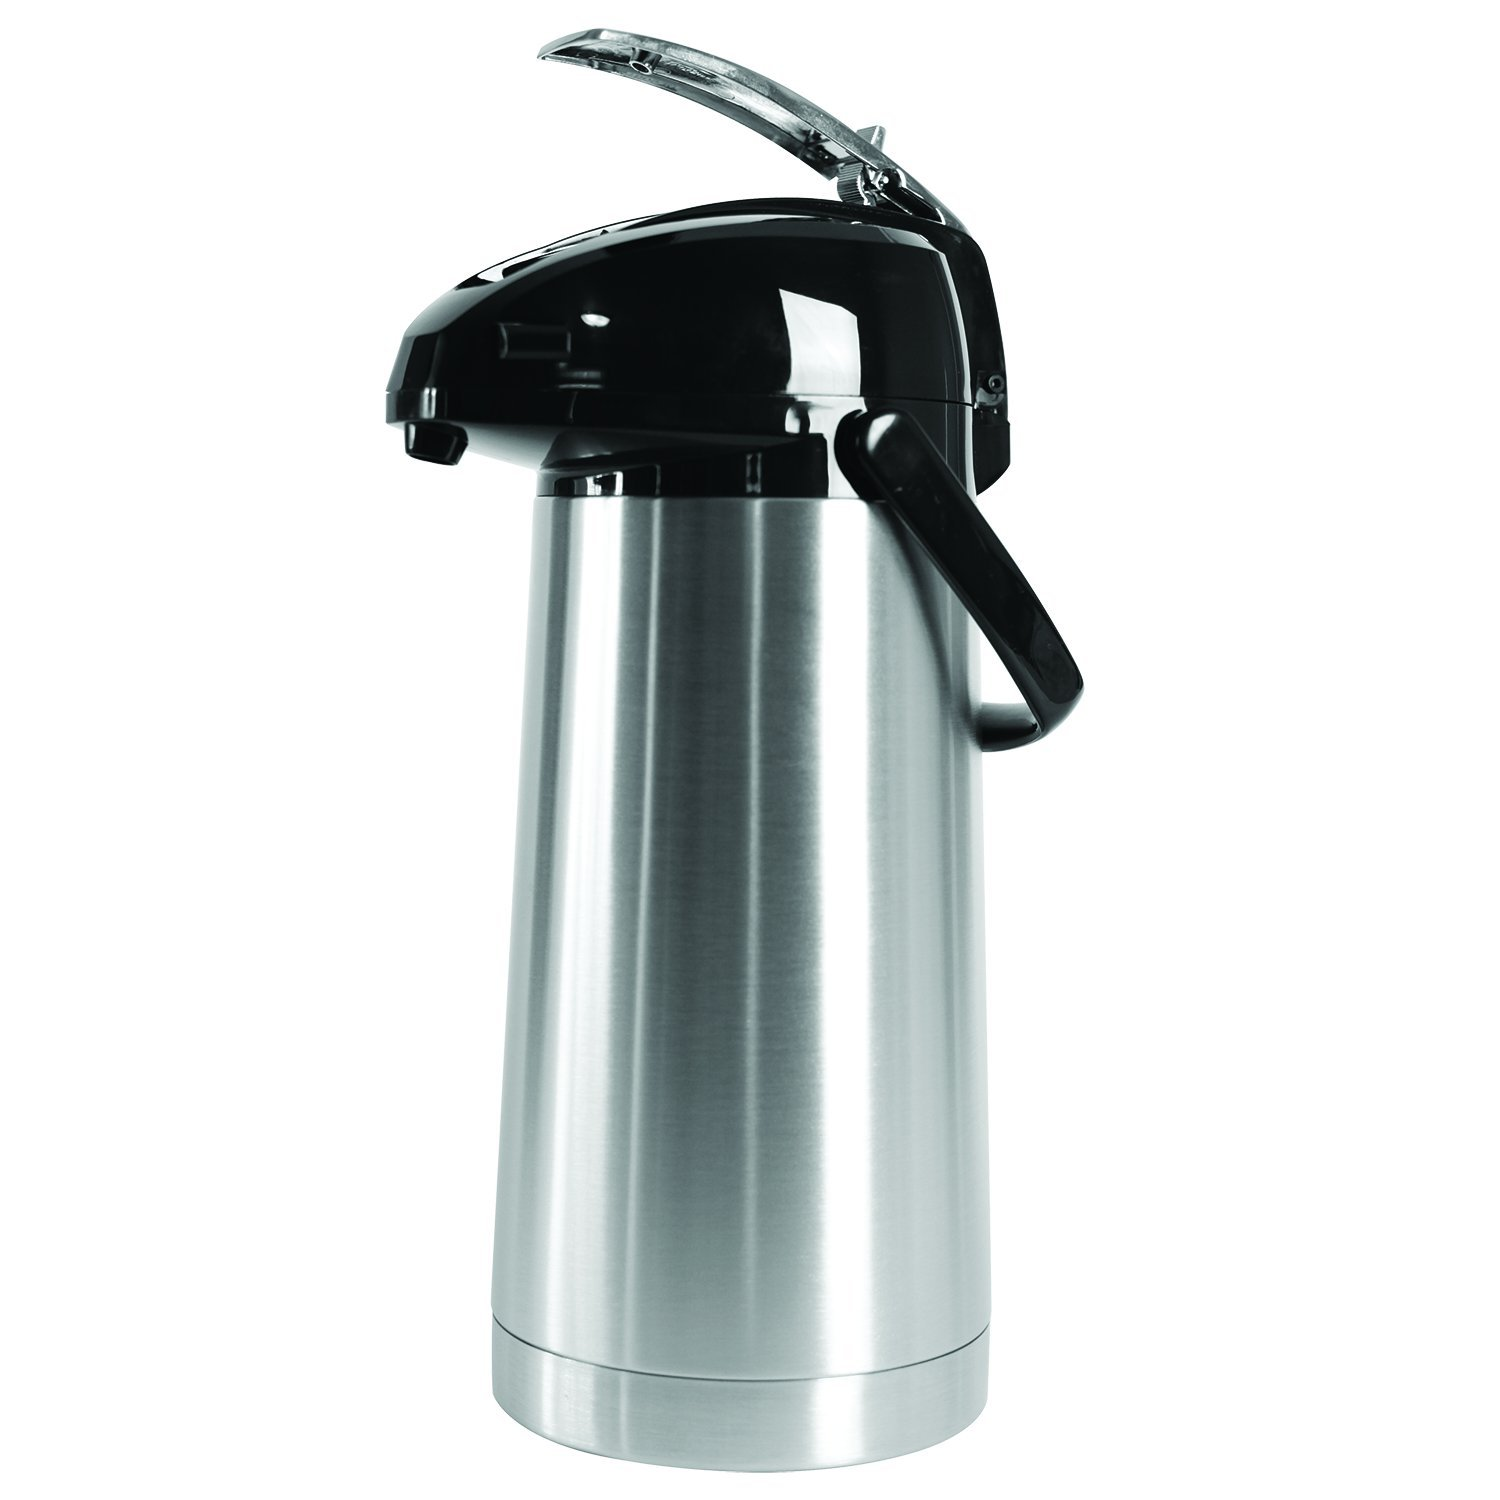 Service Ideas SAL30 Airpot with Lever, Stainless Steel Lined, 3.0 L, Brushed with Black Accents